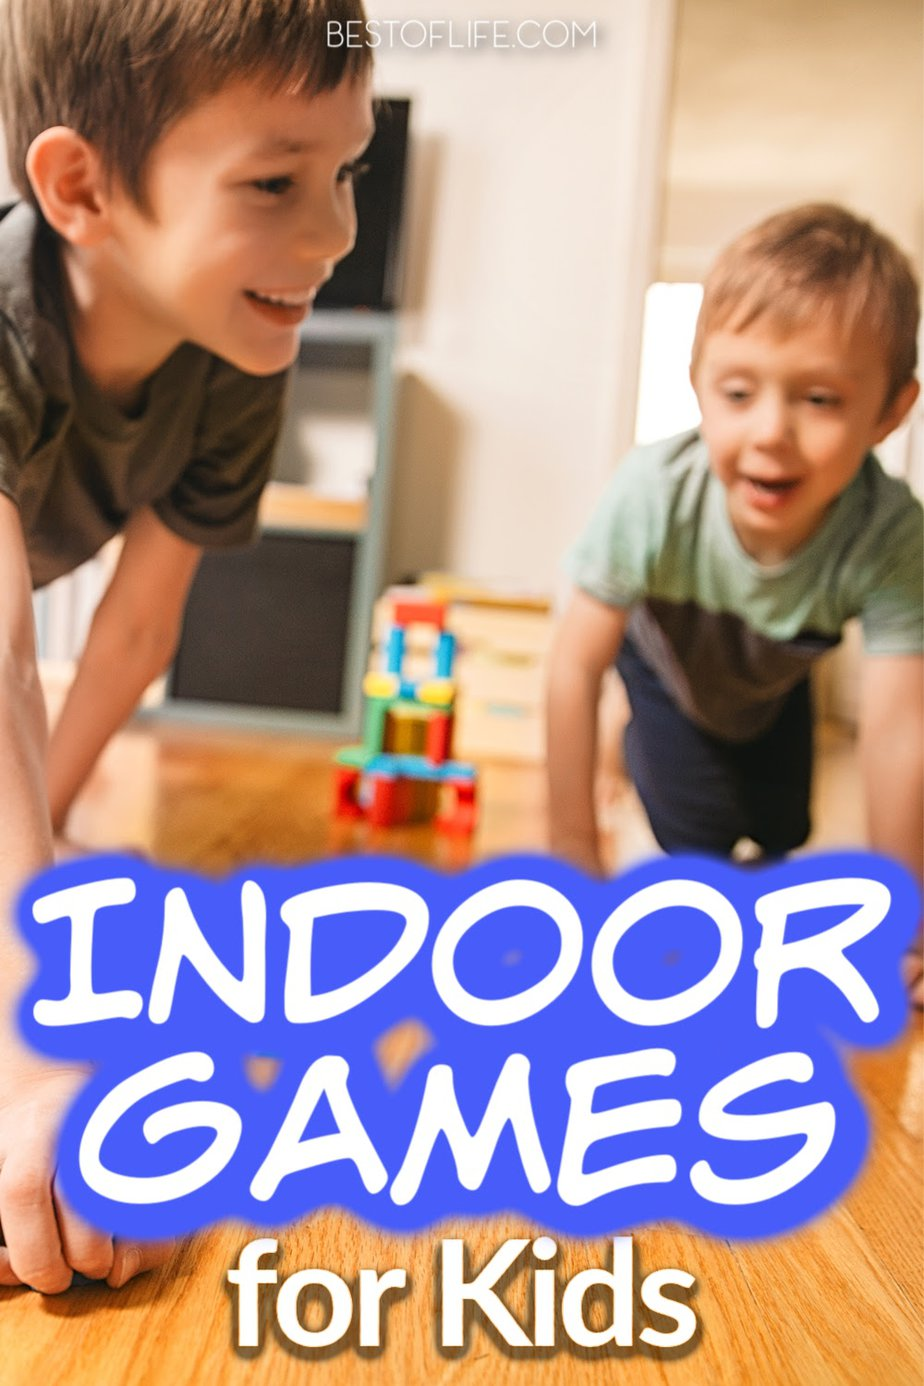 There are fun indoor games for kids that parents can use to help keep kids entertained inside when there is no other option. Parenting Tips | Things to do with Kids | Indoor Games for Toddlers | At Home Activities for Kids | DIY Things to do for Kids #parenting #kids